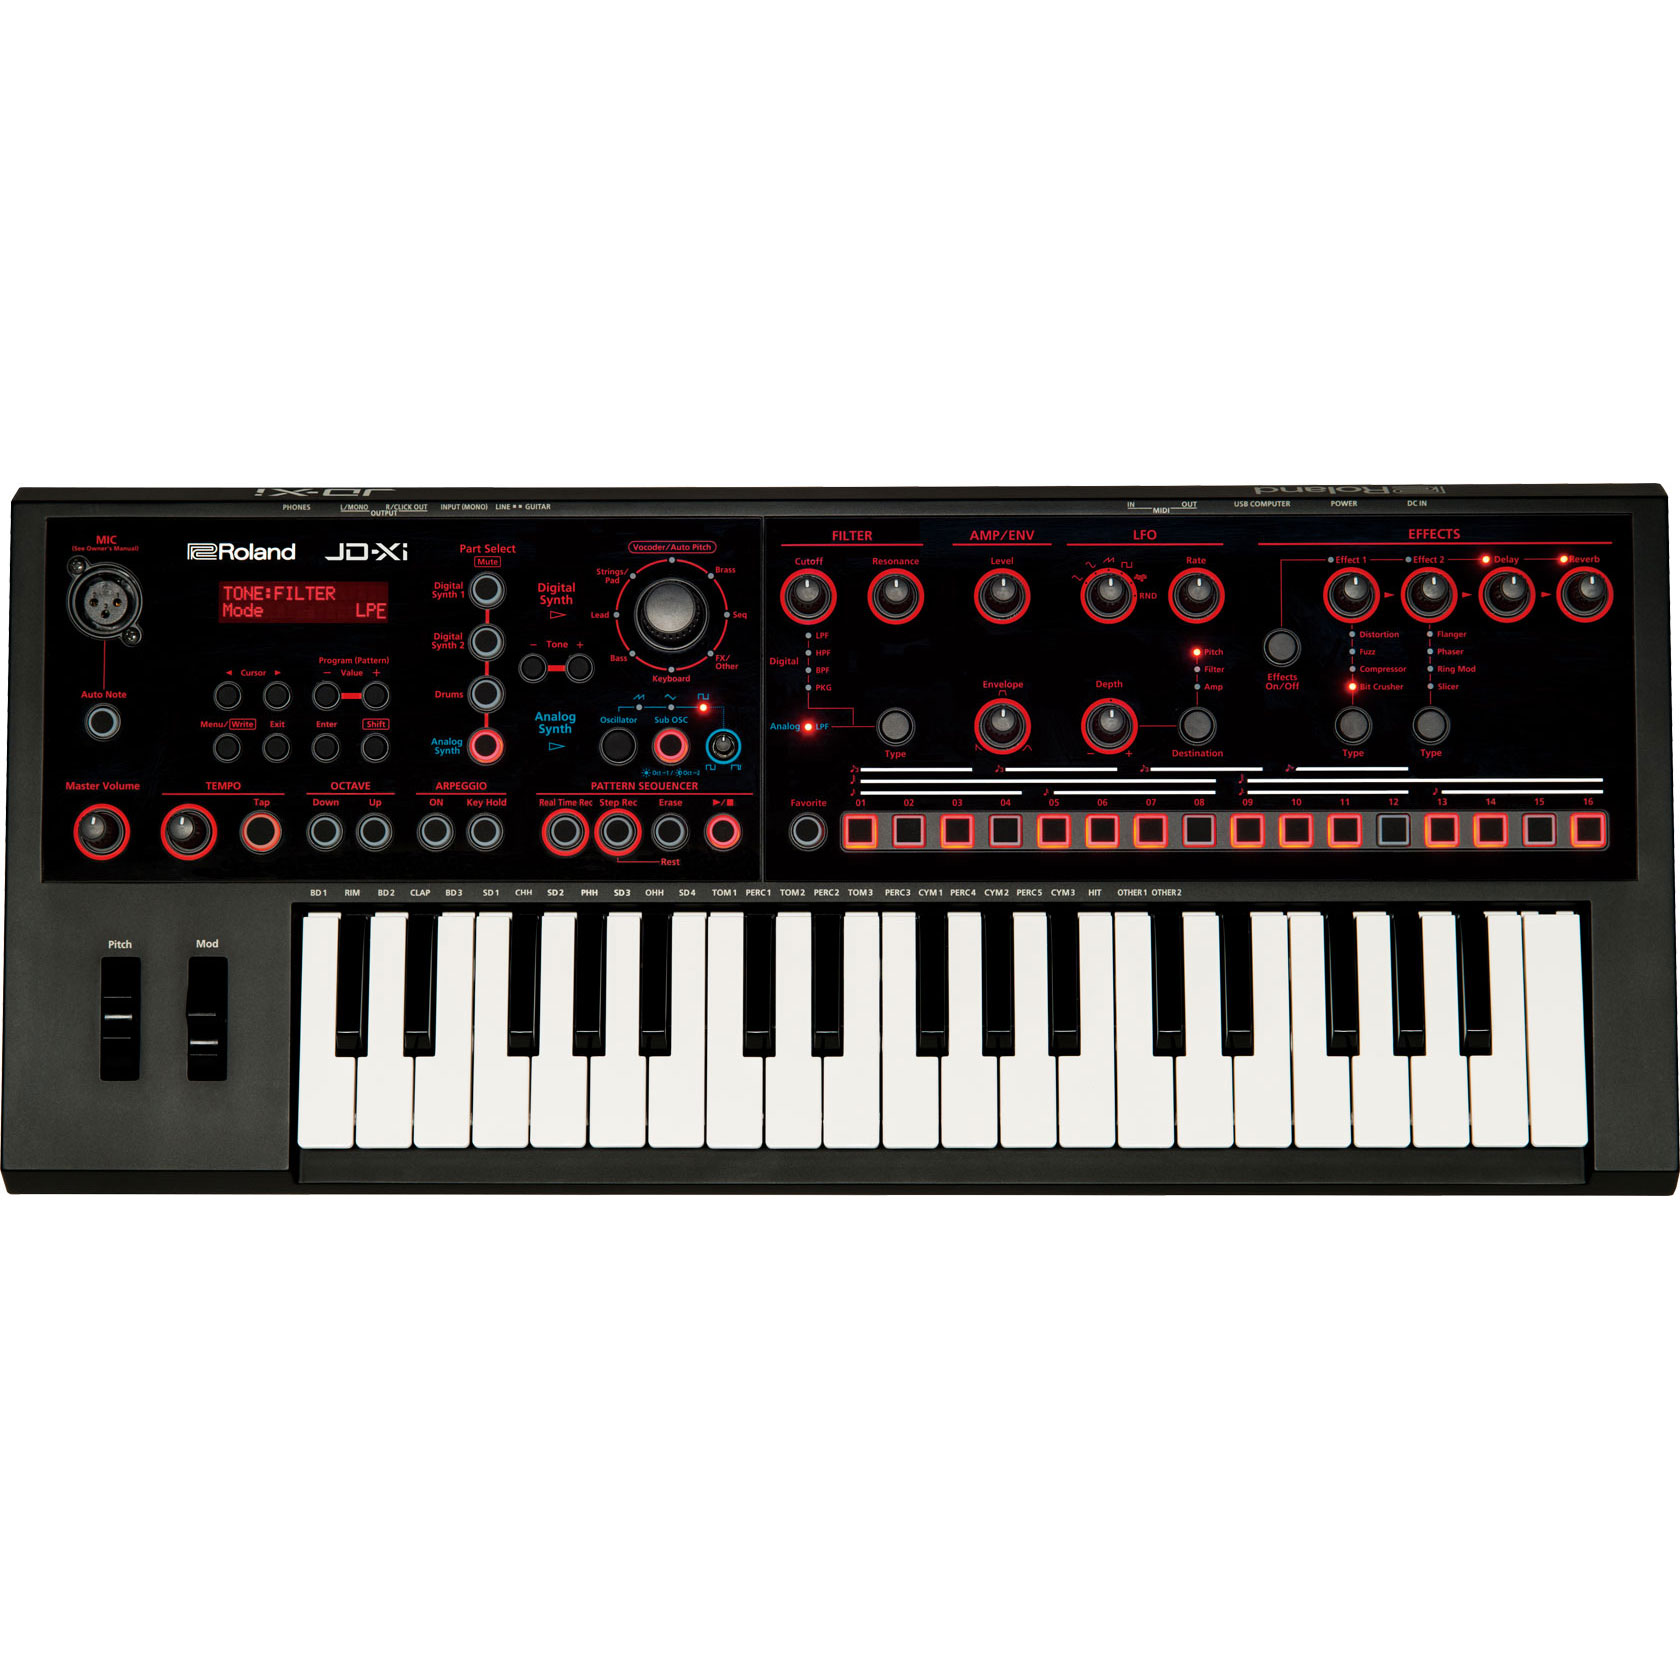 Roland 37-Key Interactive Analog/Digital Crossover Synthesizer with Vocoder